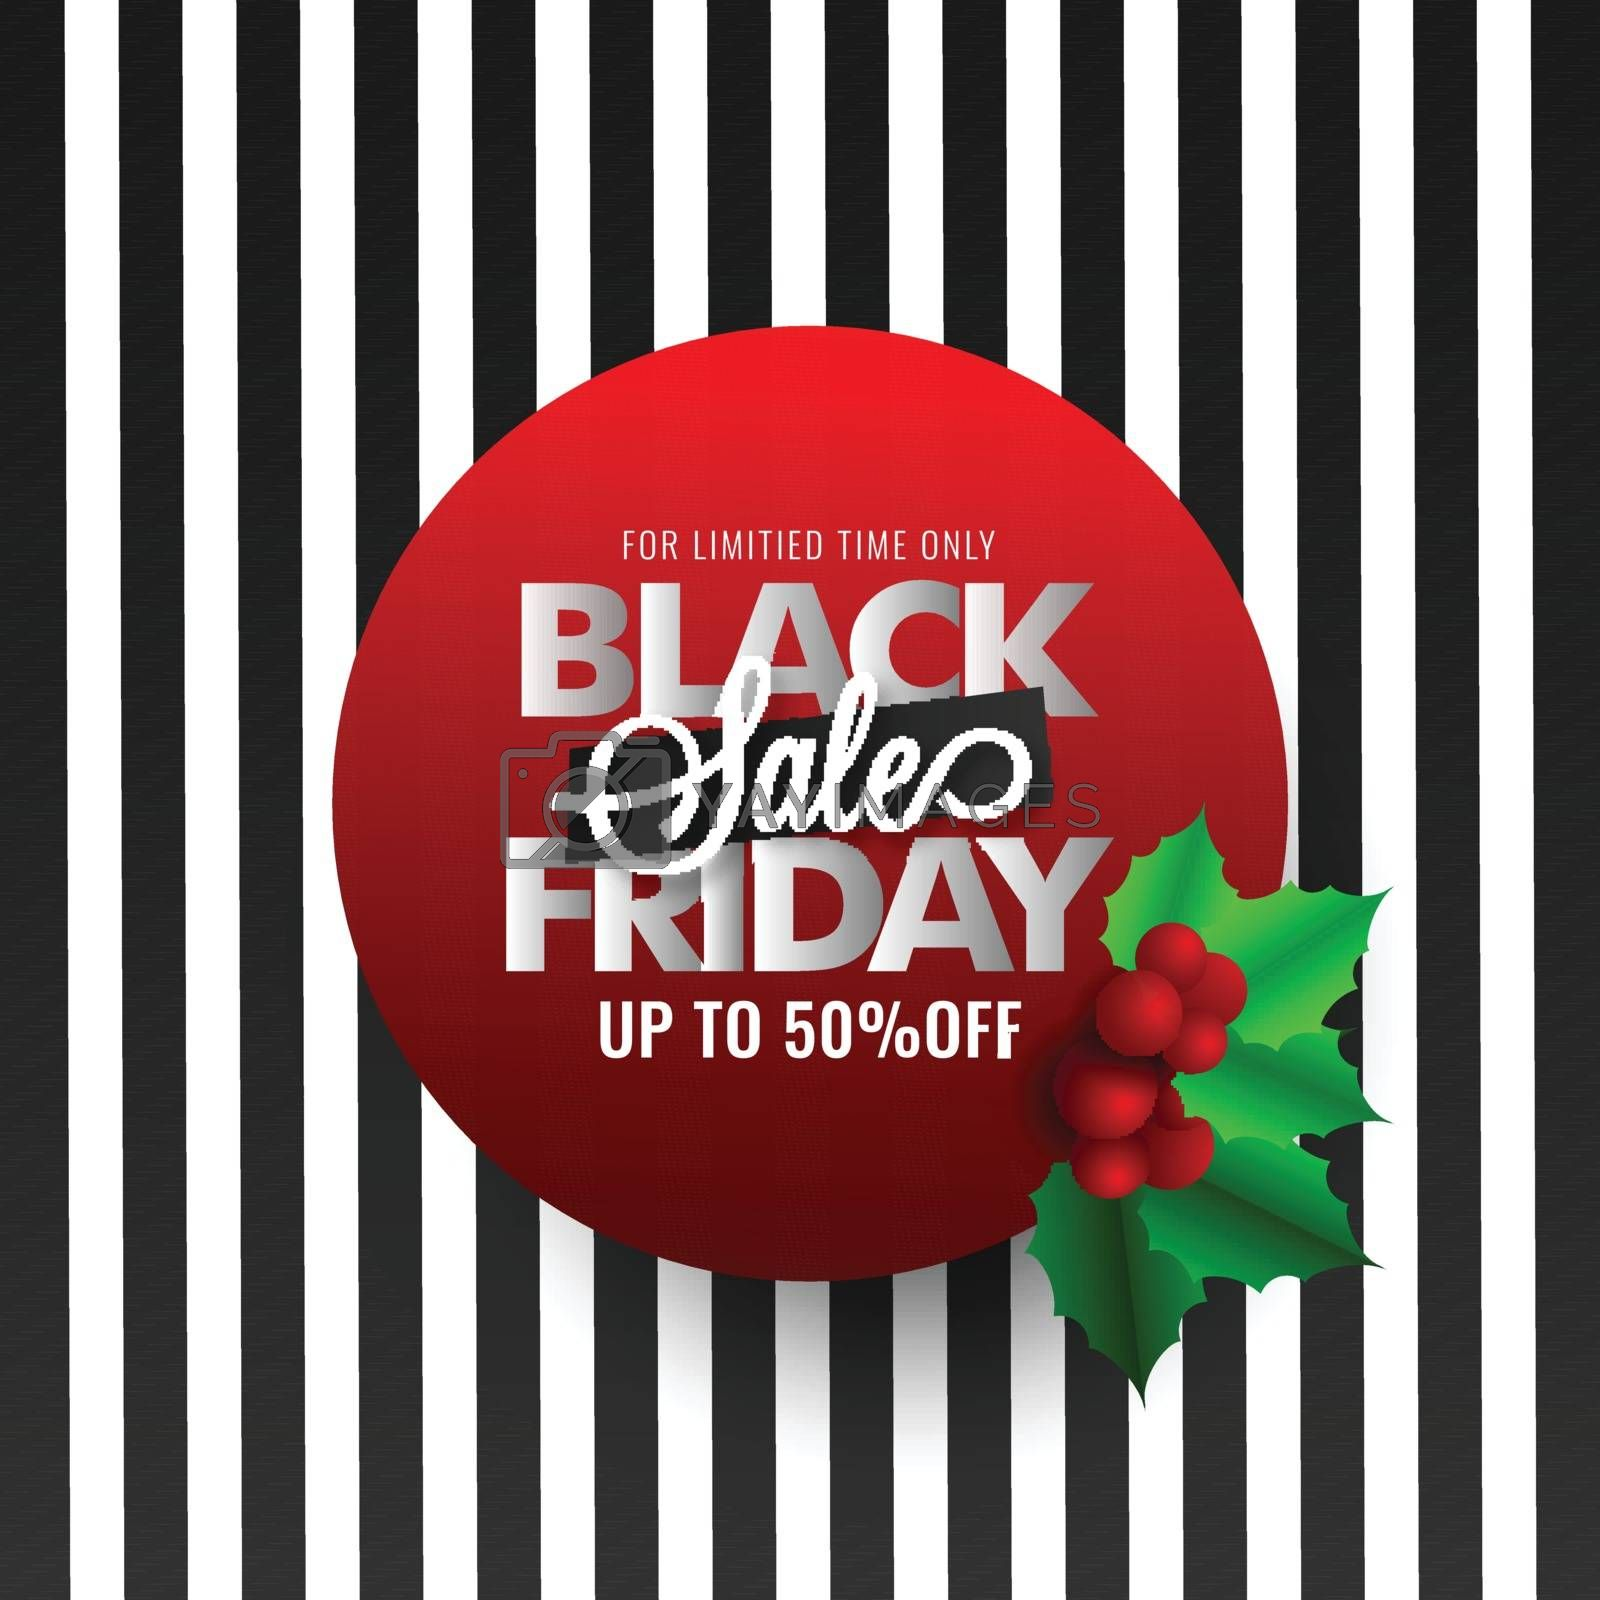 Black Friday Sale label with 50% discount offer on black and white stripe background.